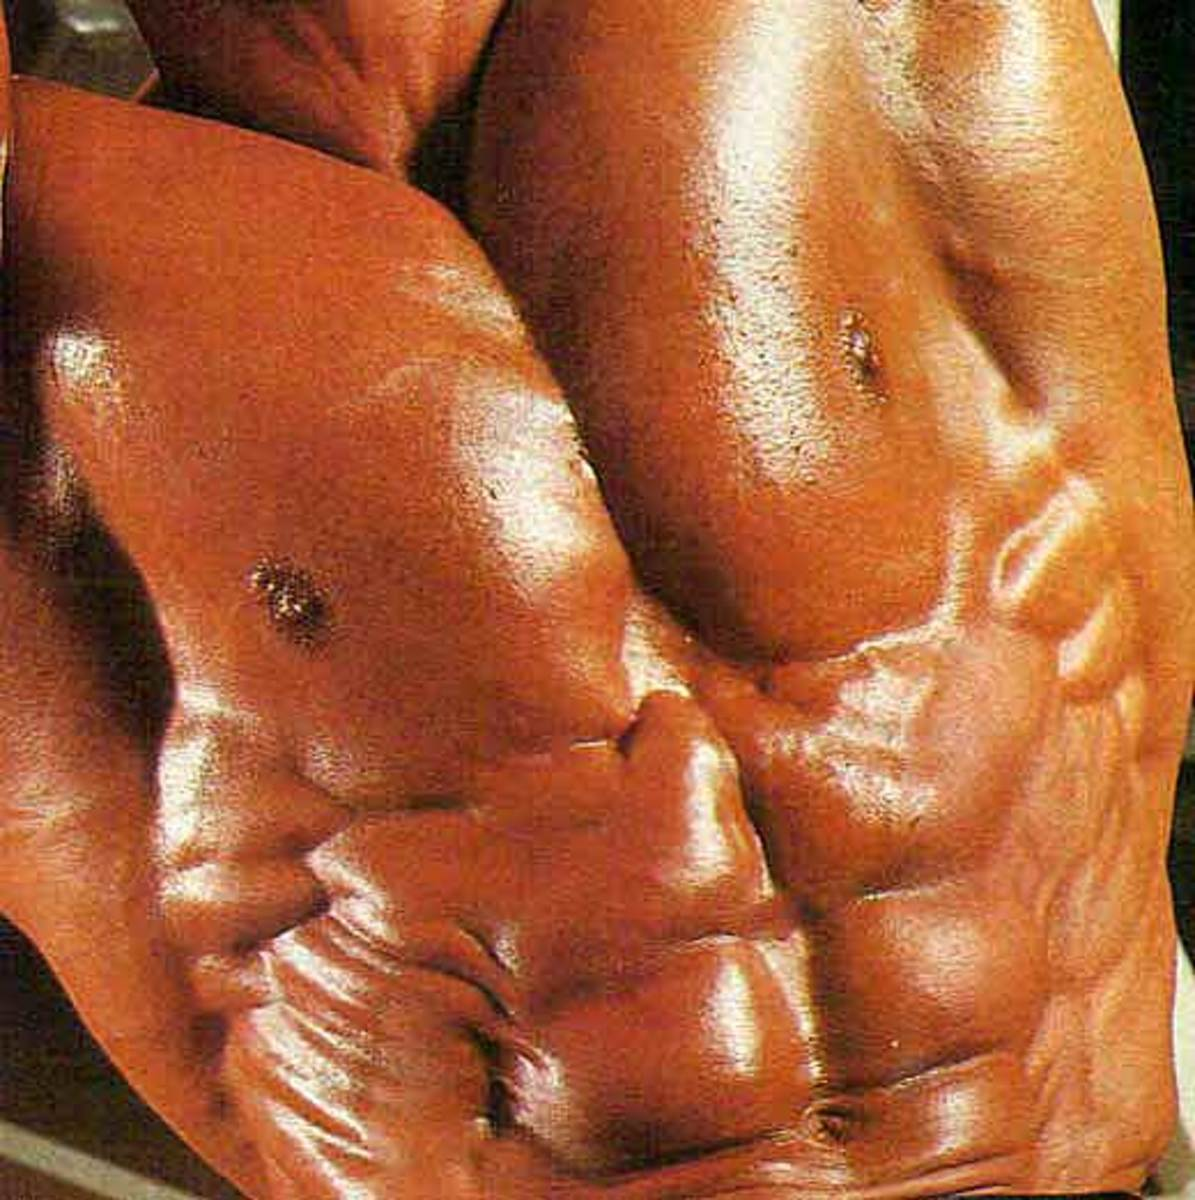 Serratus: Paying Attention To Detail